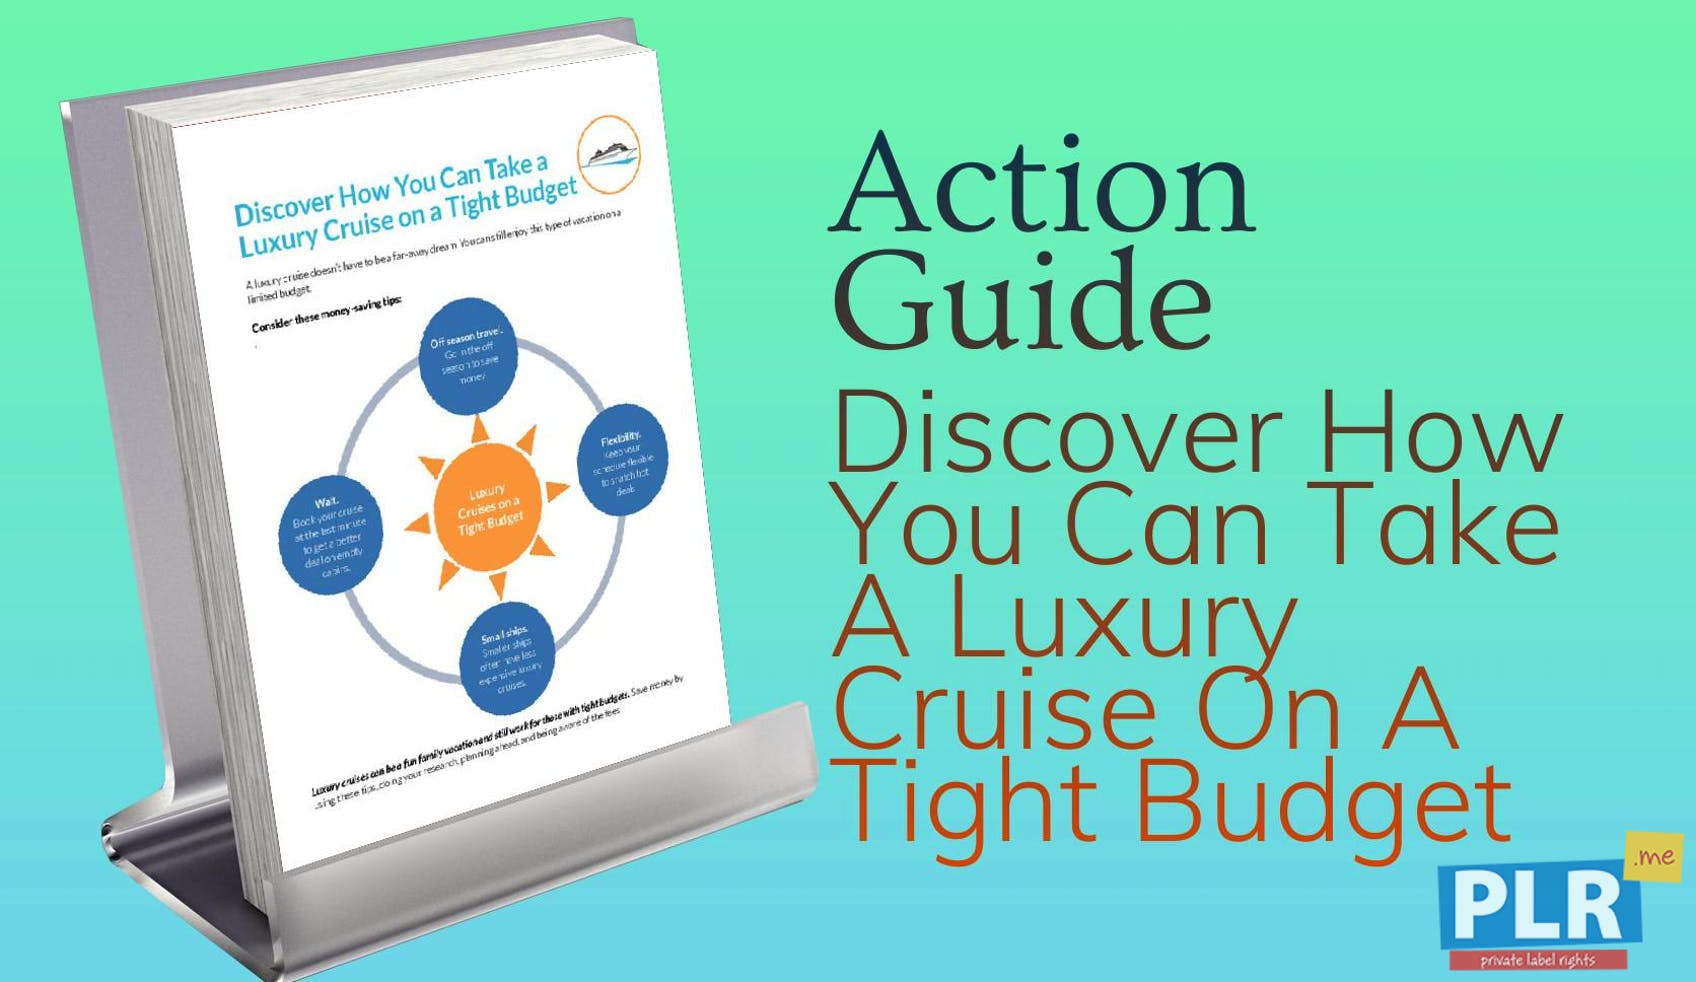 Discover How You Can Take A Luxury Cruise On A Tight Budget